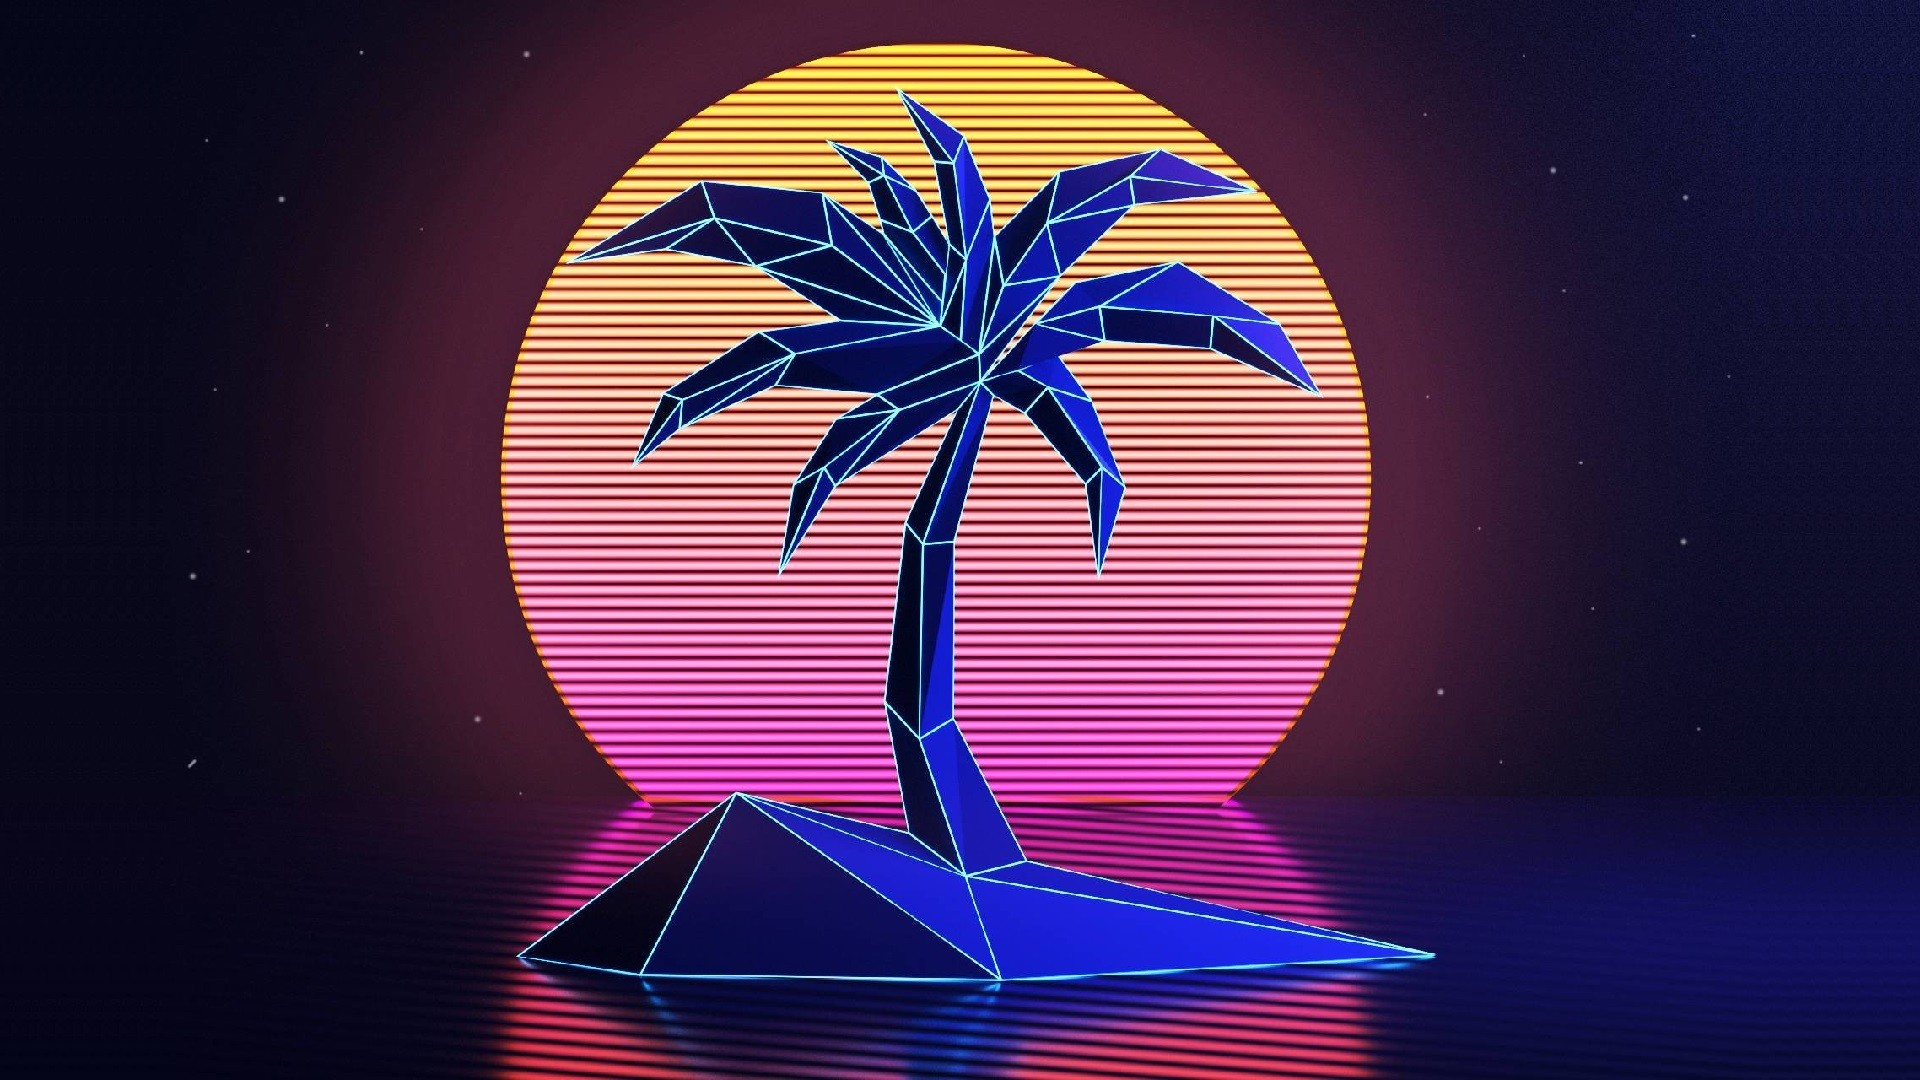 General 1920x1080 VHS palm trees 1980s New Retro Wave Retro style vintage sunset neon